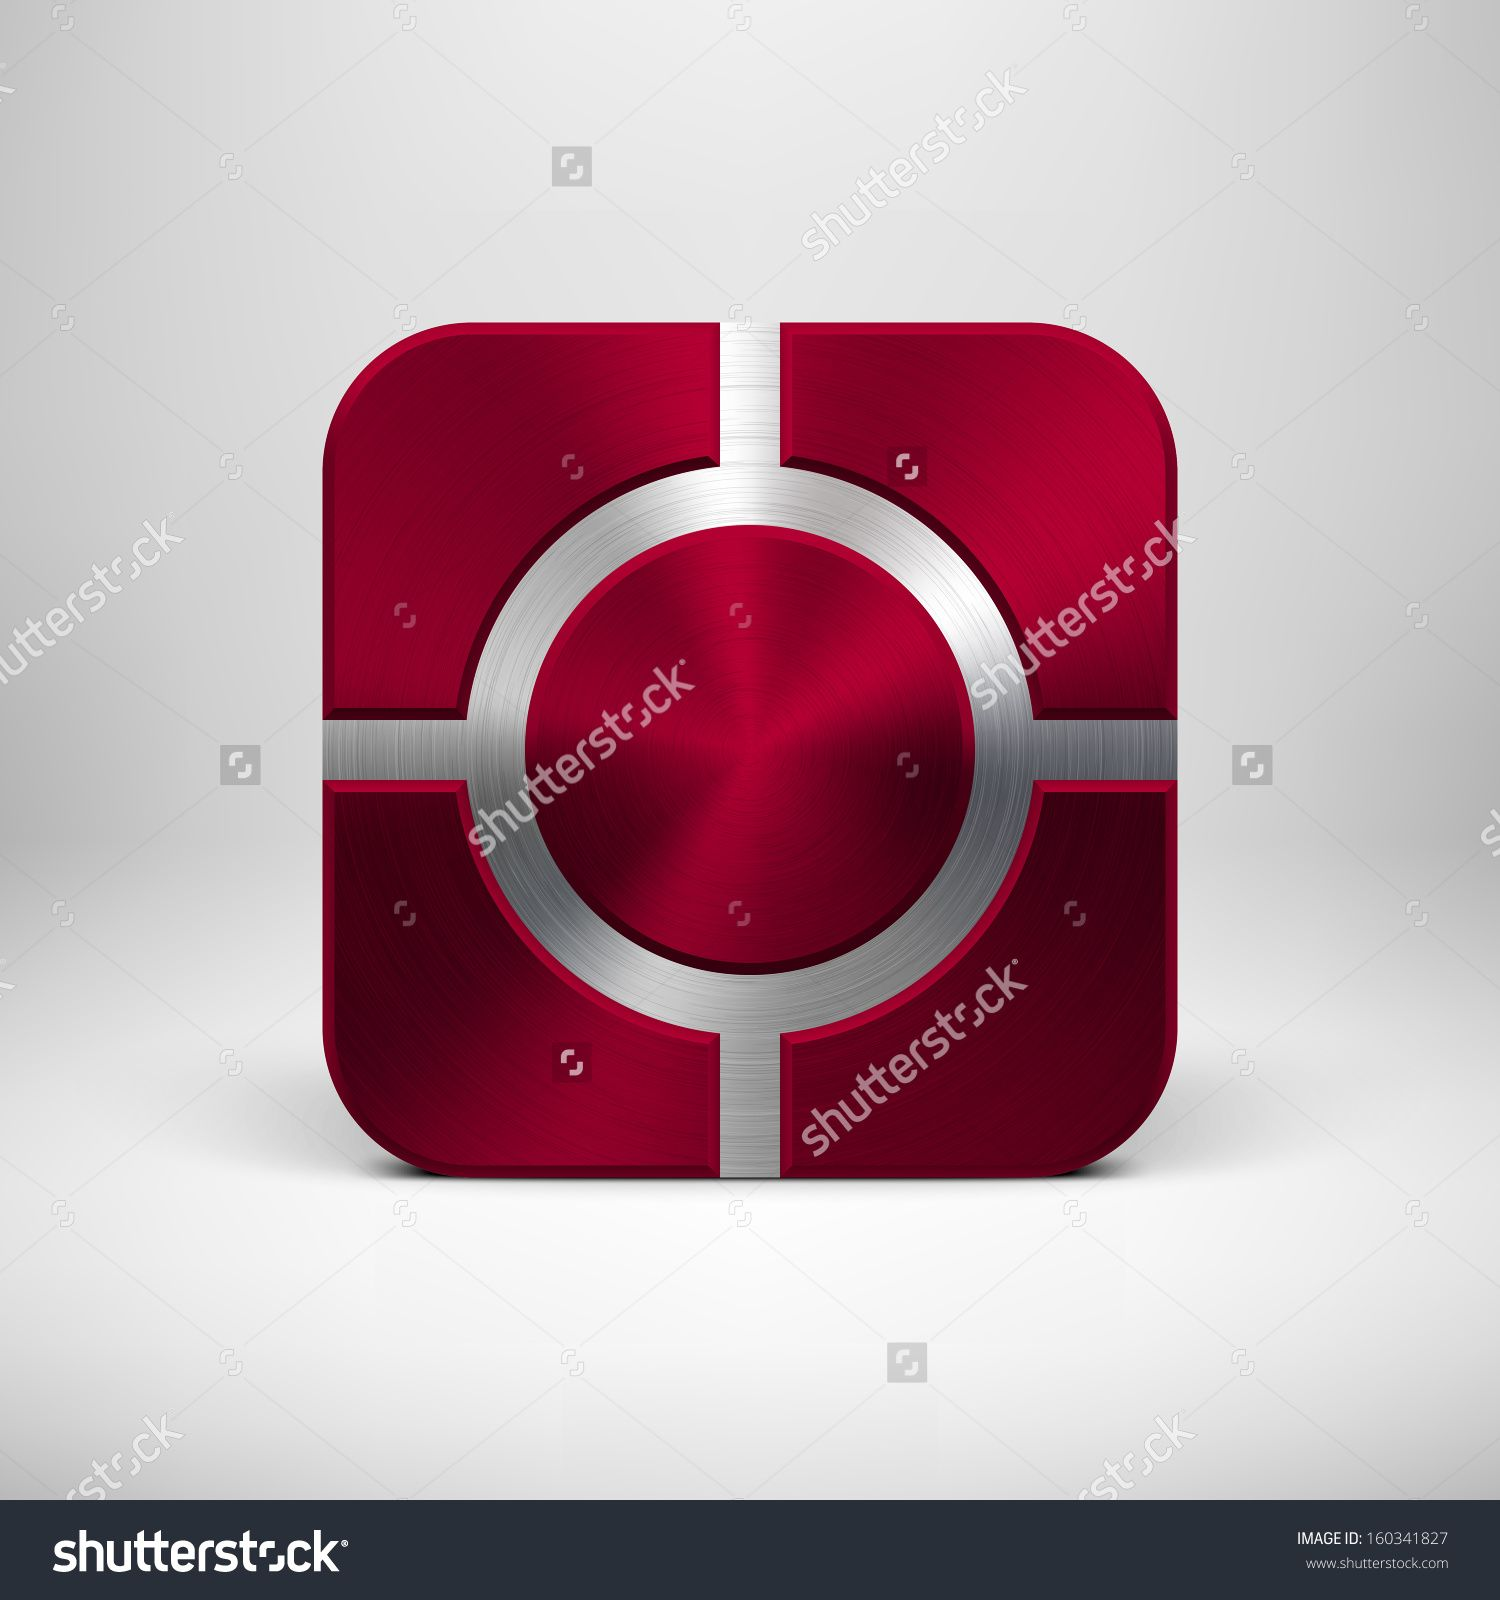 Abstract Technology App Icon, Button Template With Maroon